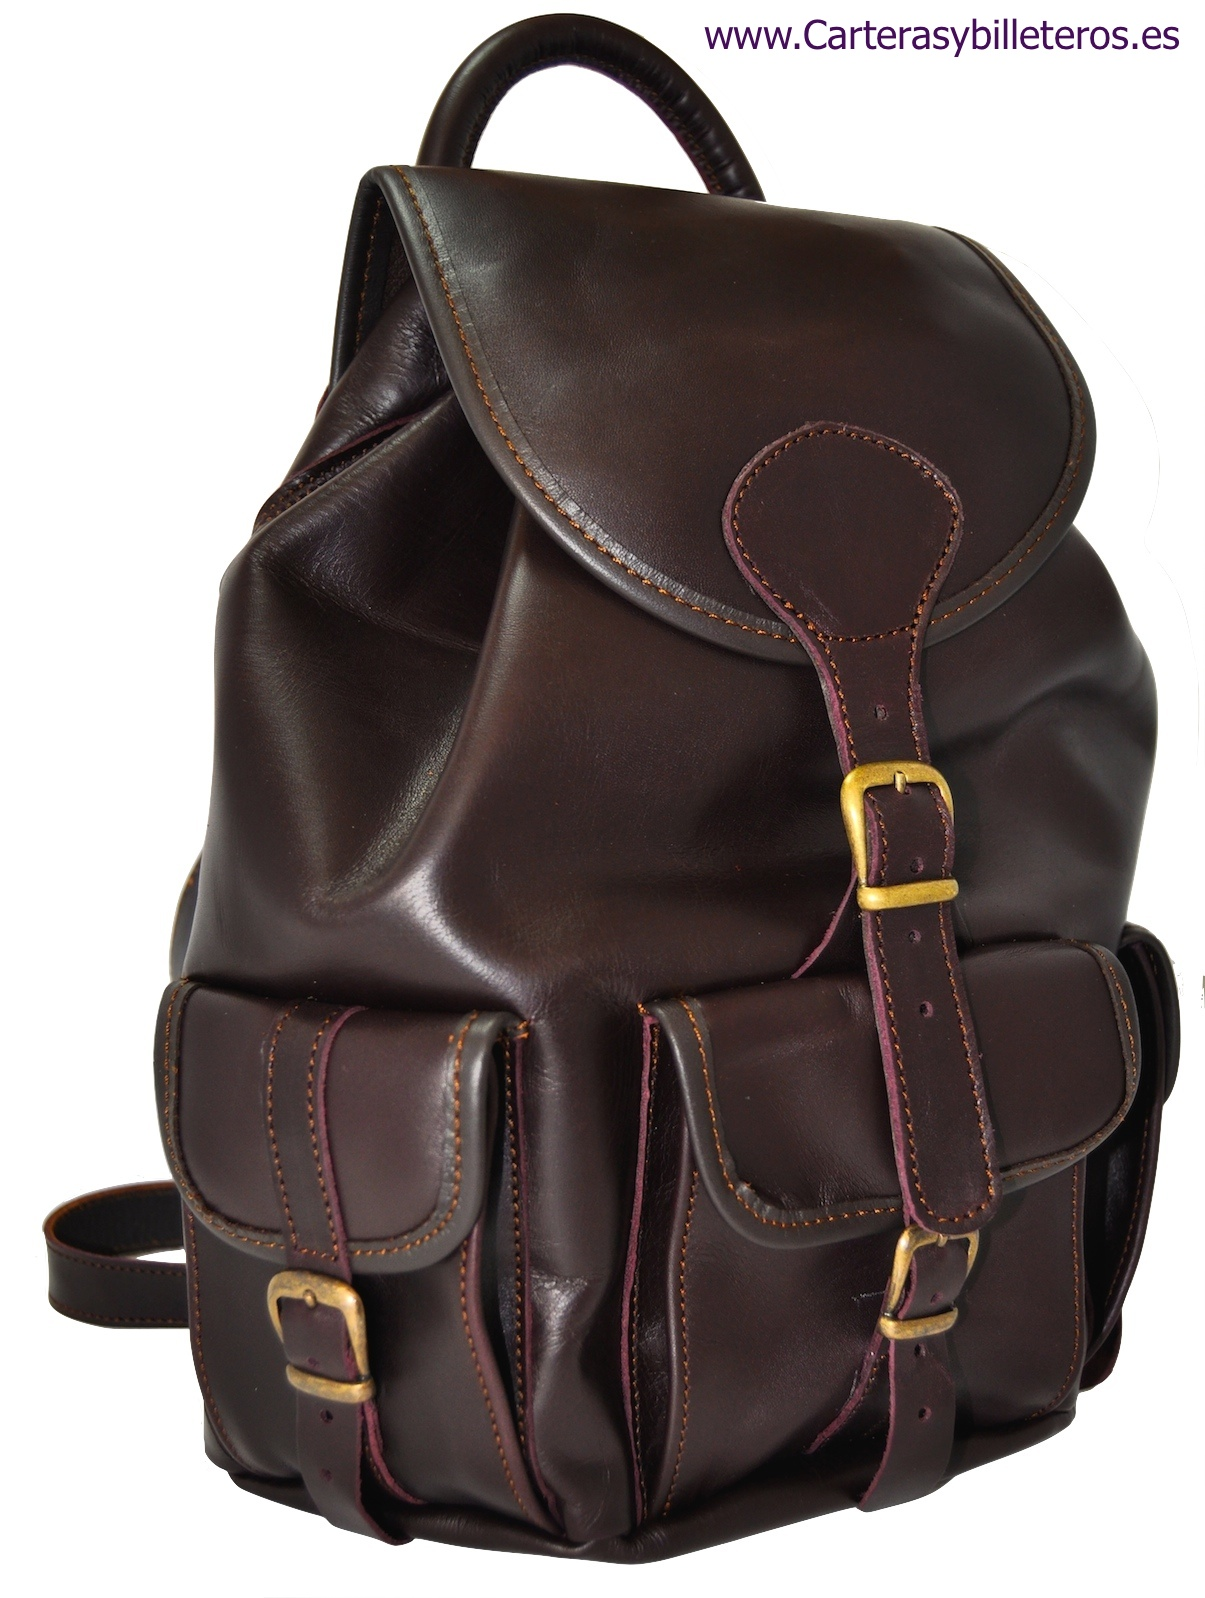 PONY LEATHER BAG HANDMADE DARK BROWN